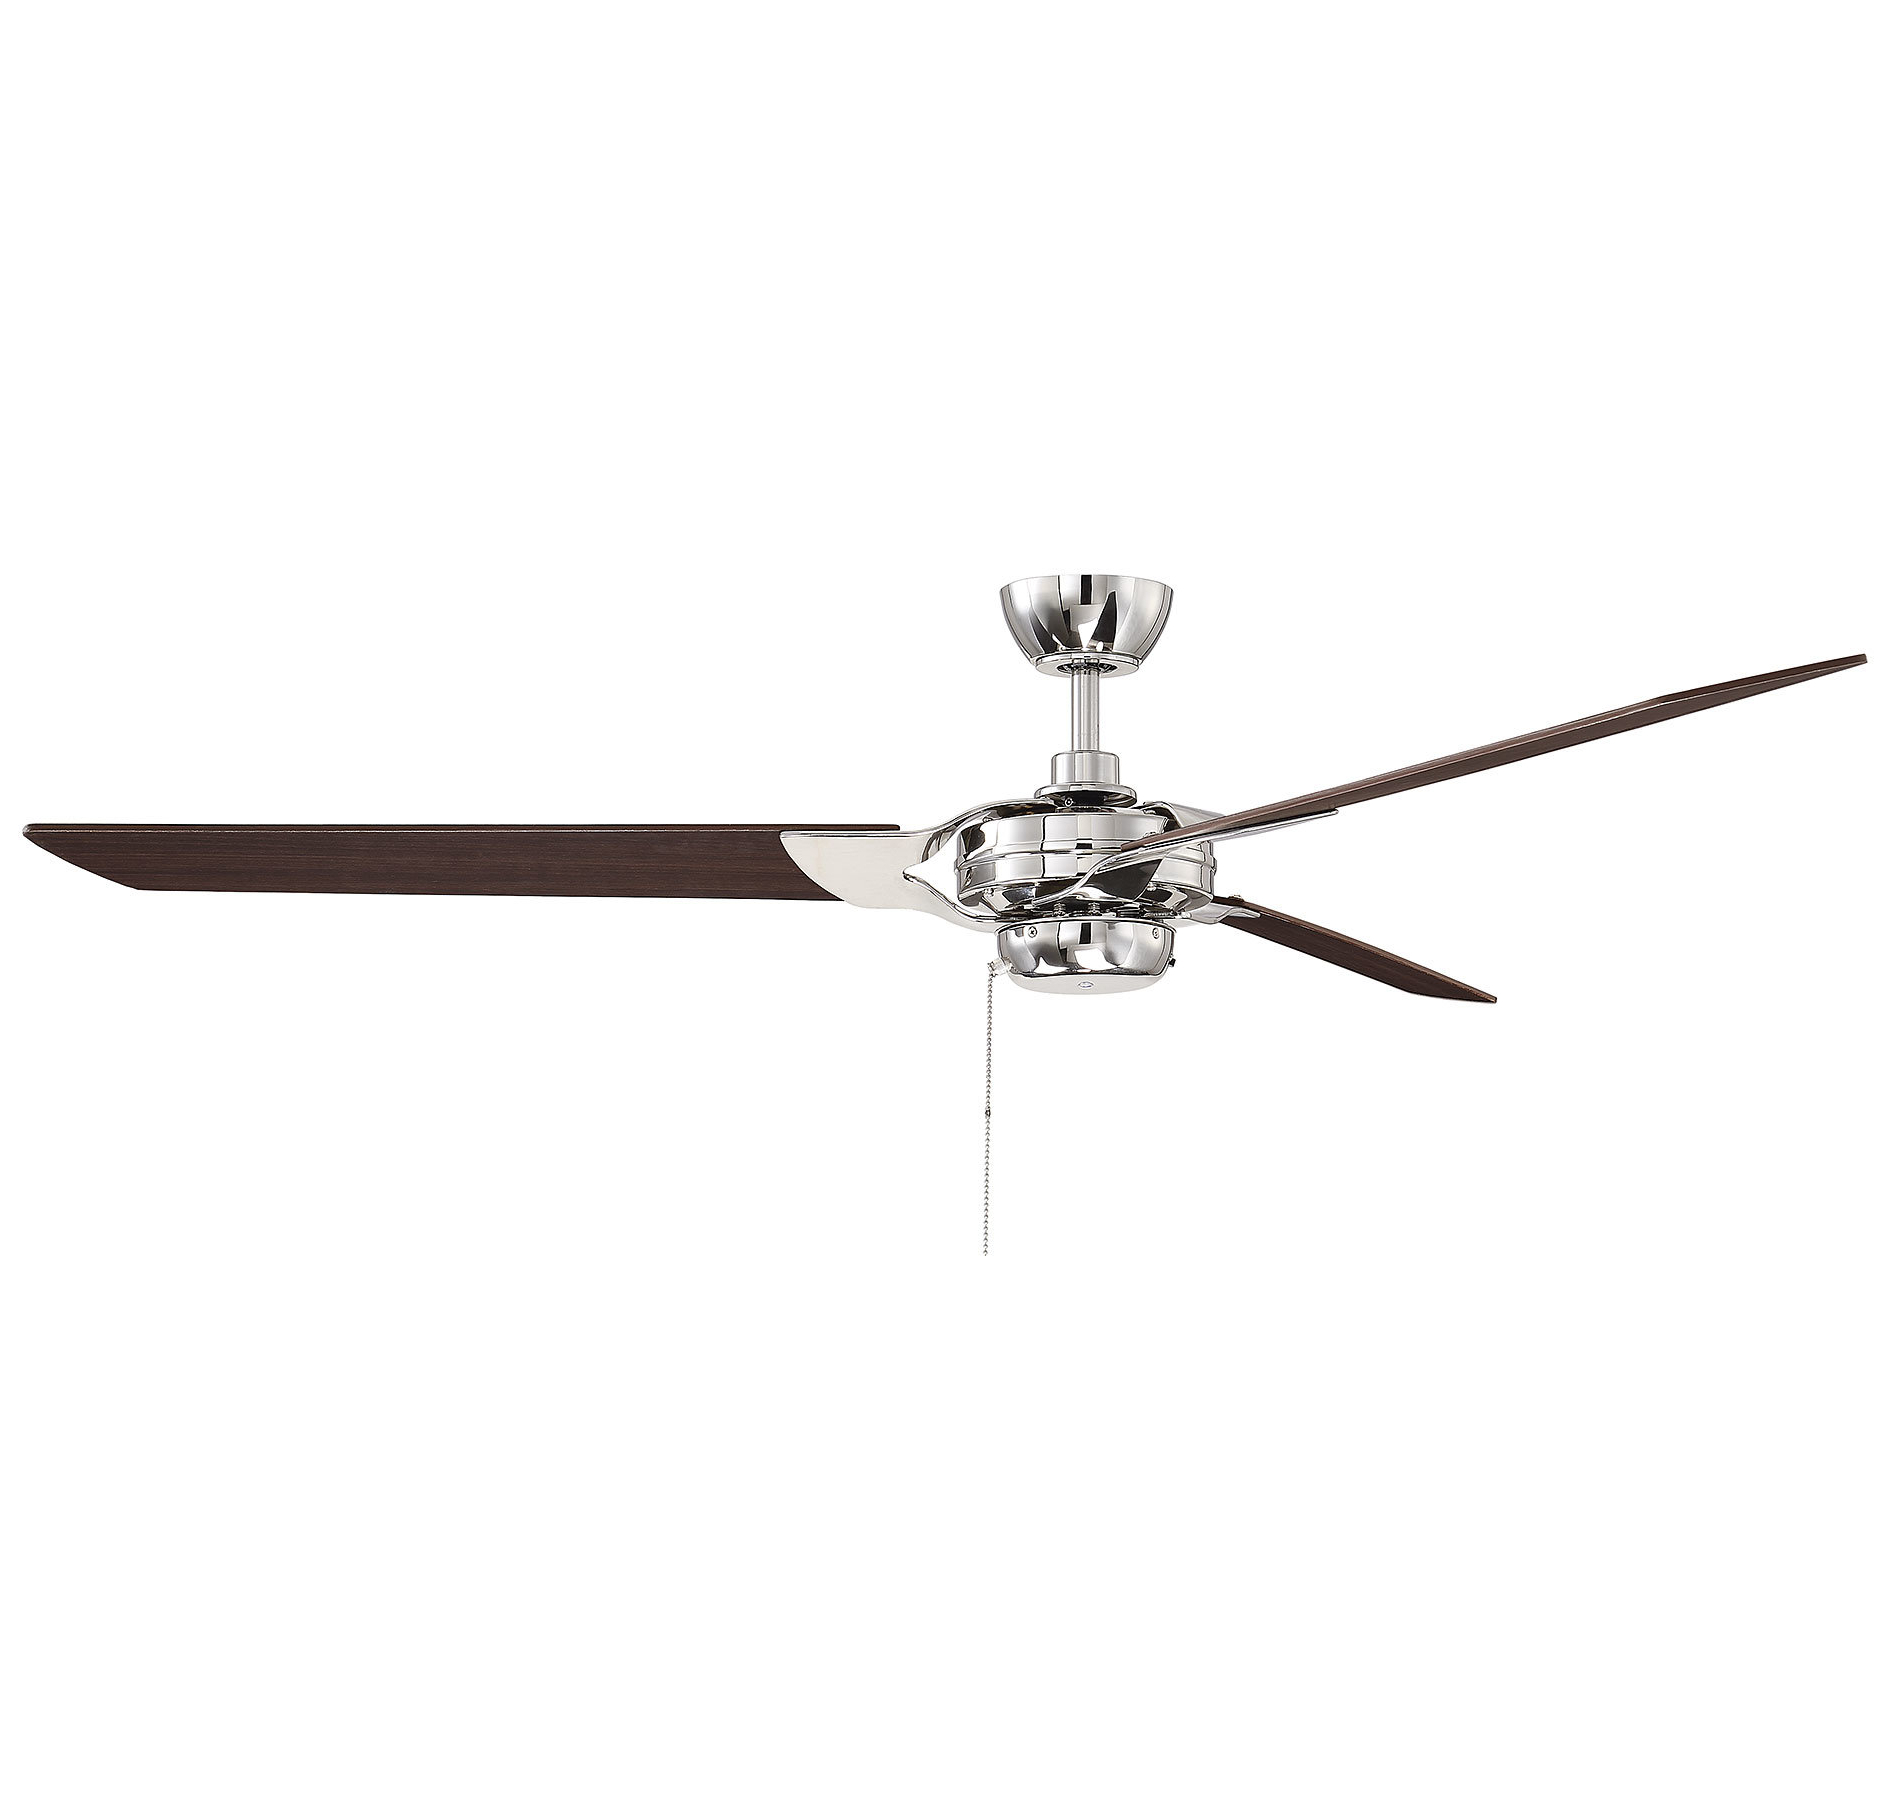 "Troy 3 Blade Led Ceiling Fans Intended For Famous 62"" St Catherine Monfort 3 Blade Led Ceiling Fan (View 13 of 20)"